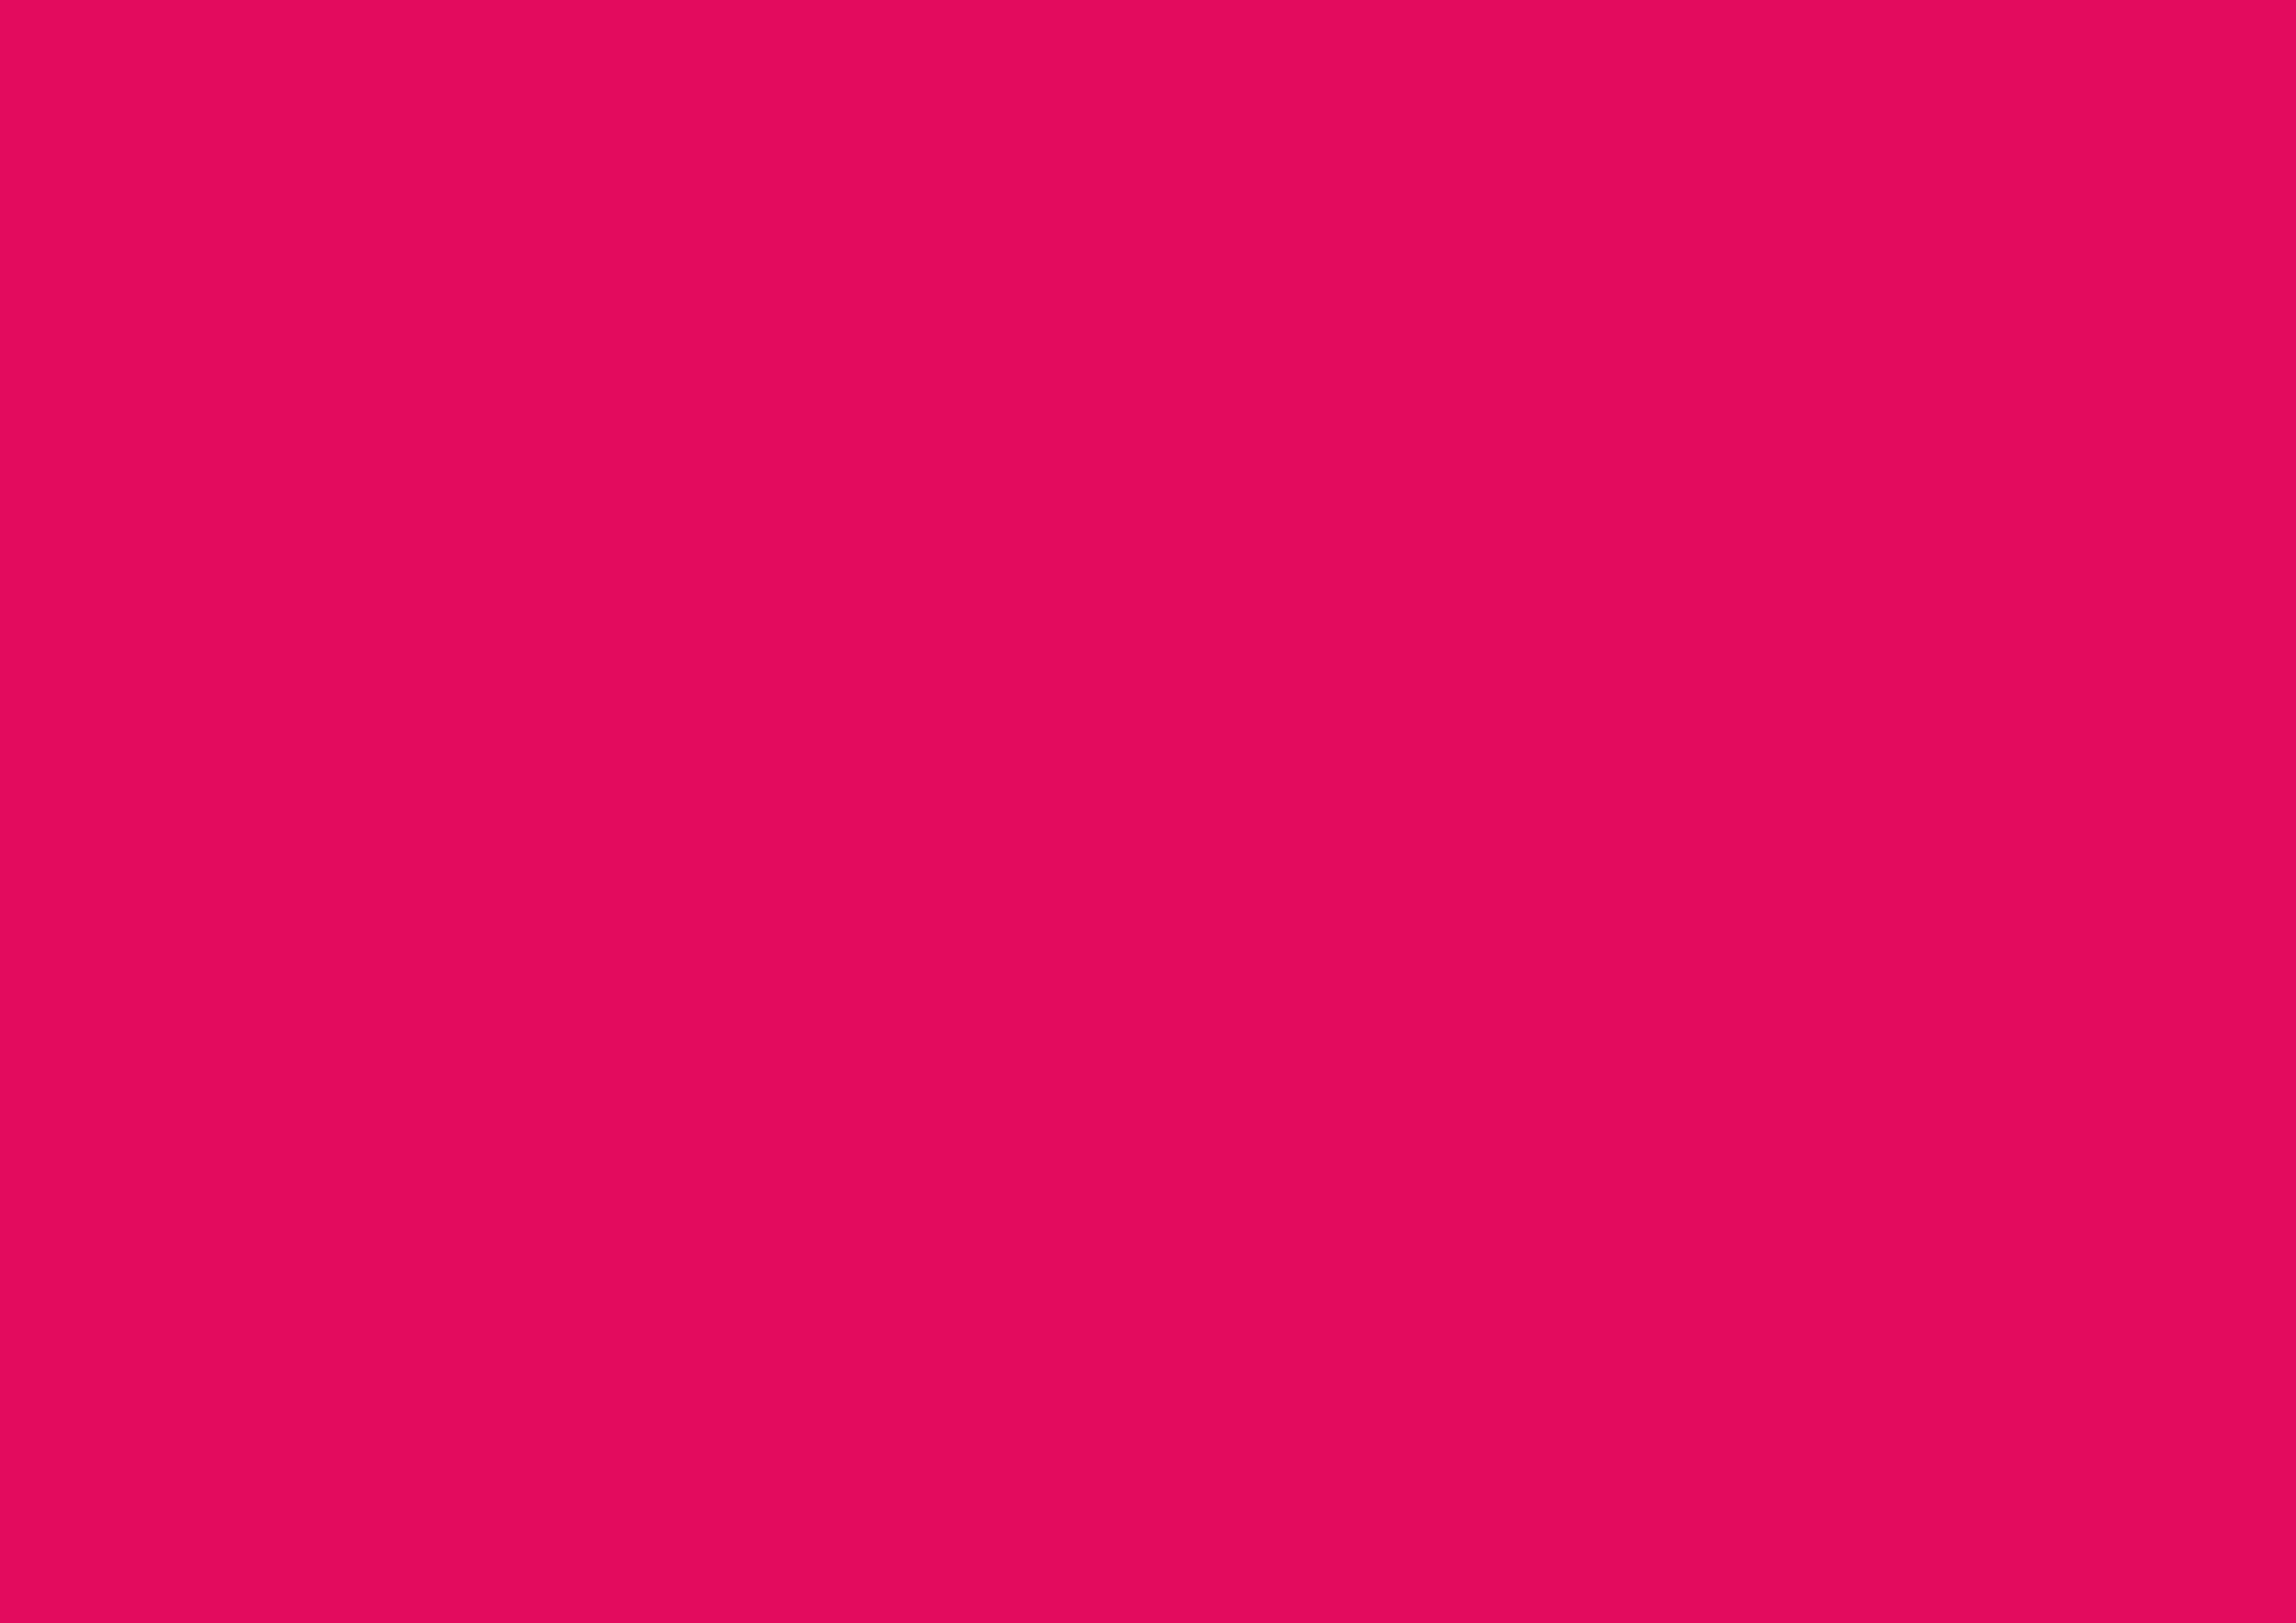 3508x2480 Raspberry Solid Color Background